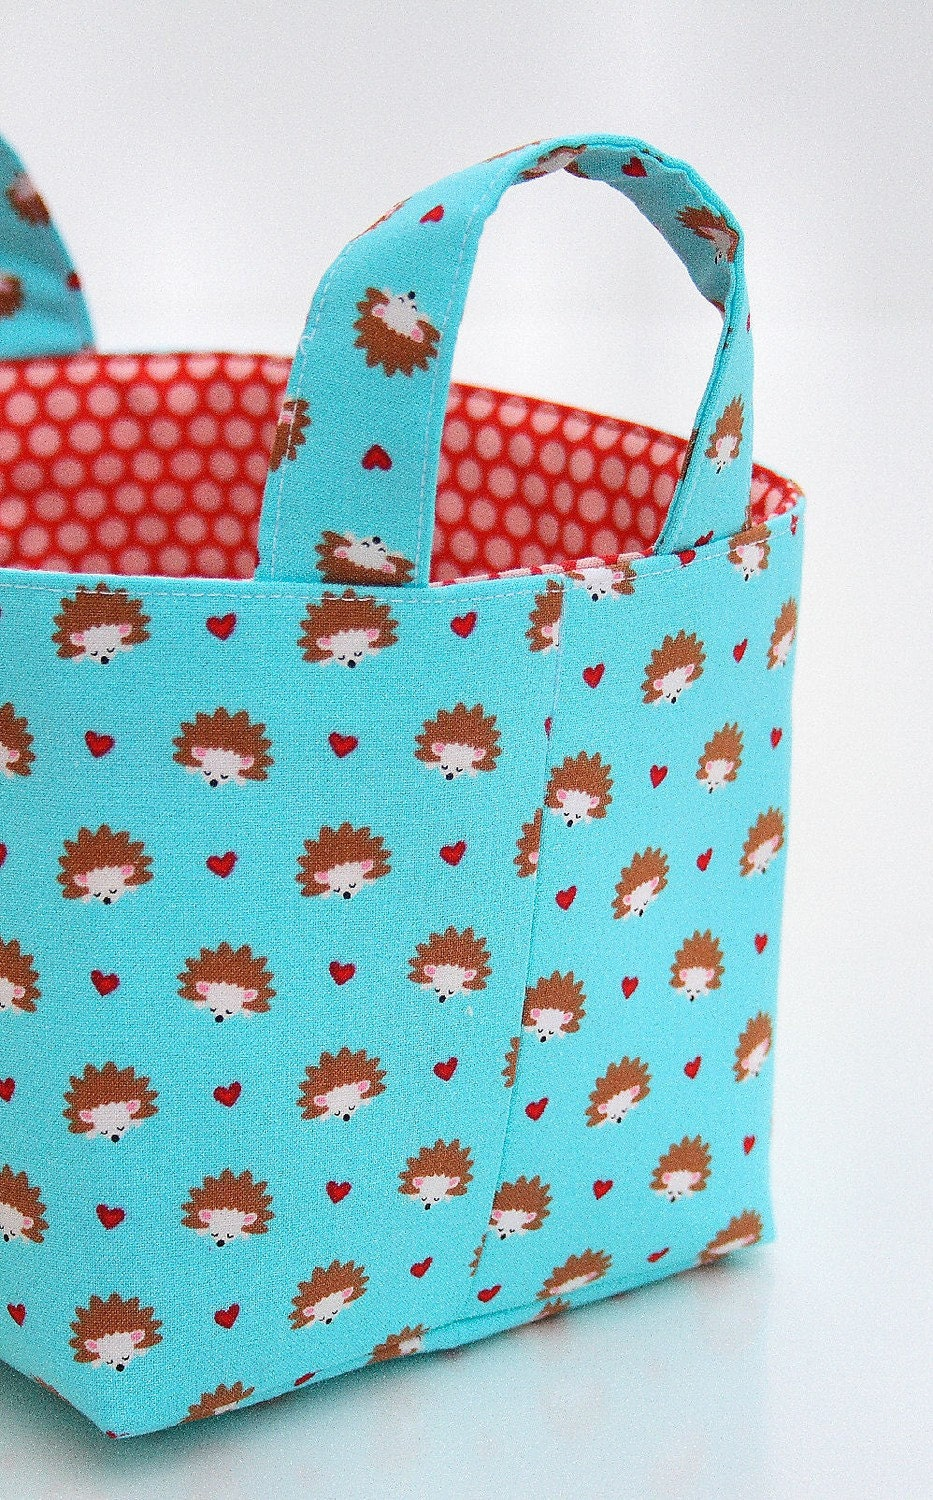 Fabric Organizer Basket Bin Reversible hedgehogs hearts